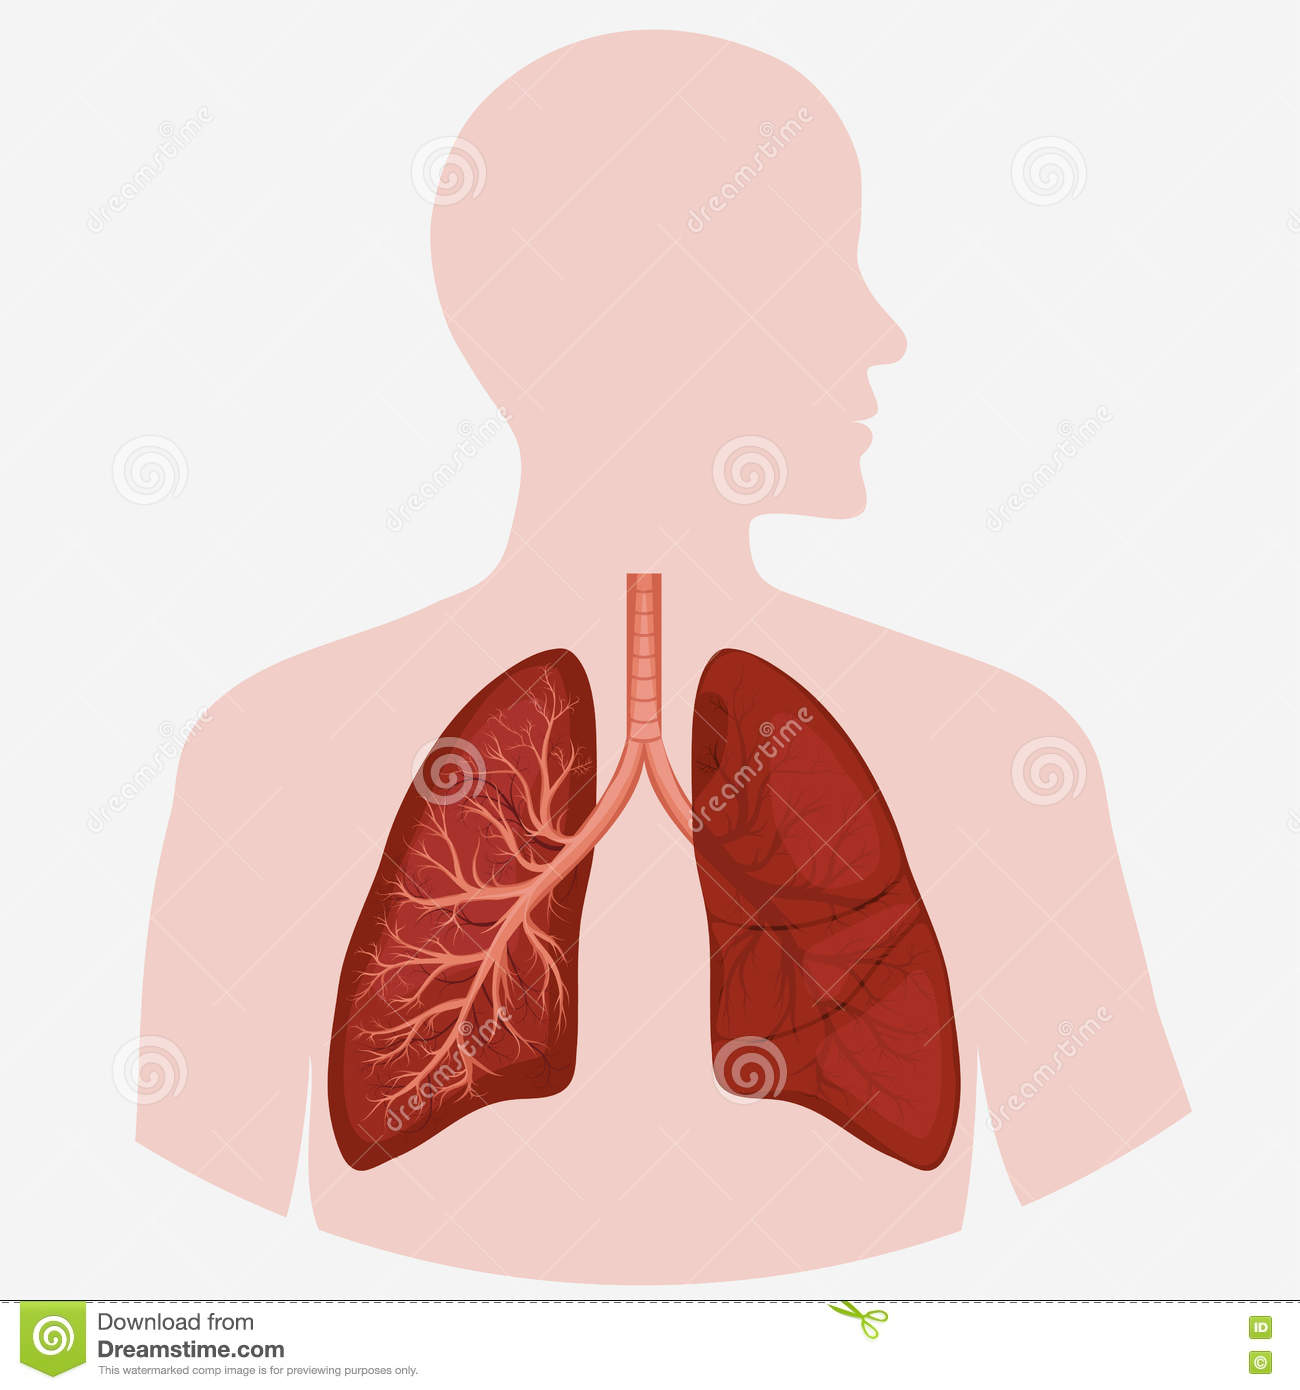 Human Lung Anatomy Diagram Stock Vector Illustration Of Anatomy